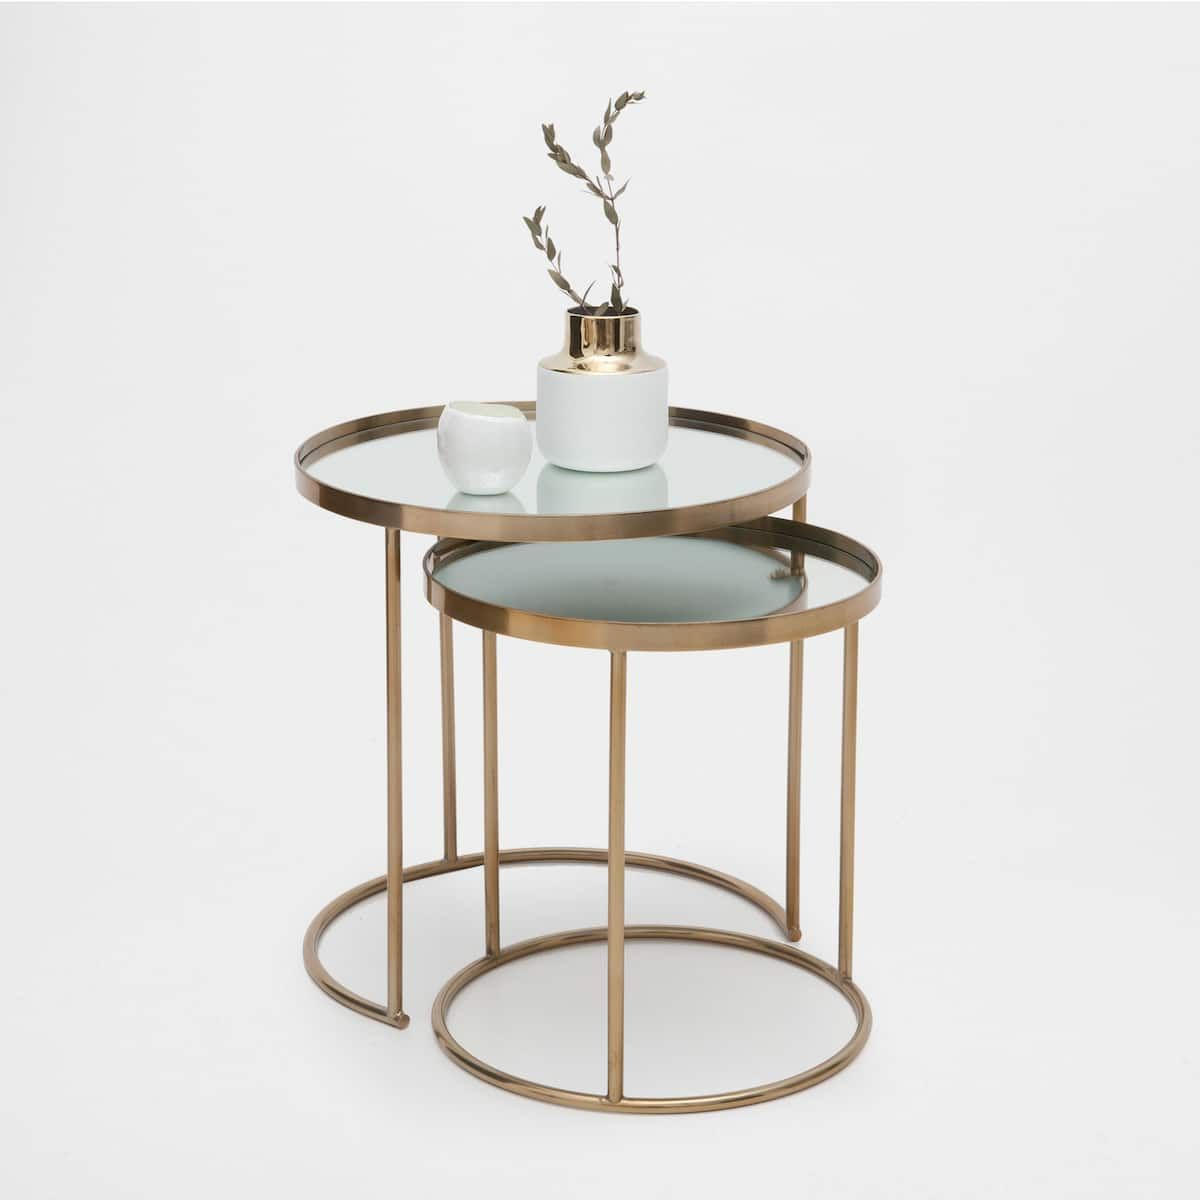 Round Gold Nest Of Tables Set Of 2 In 2019 Zara Home Table